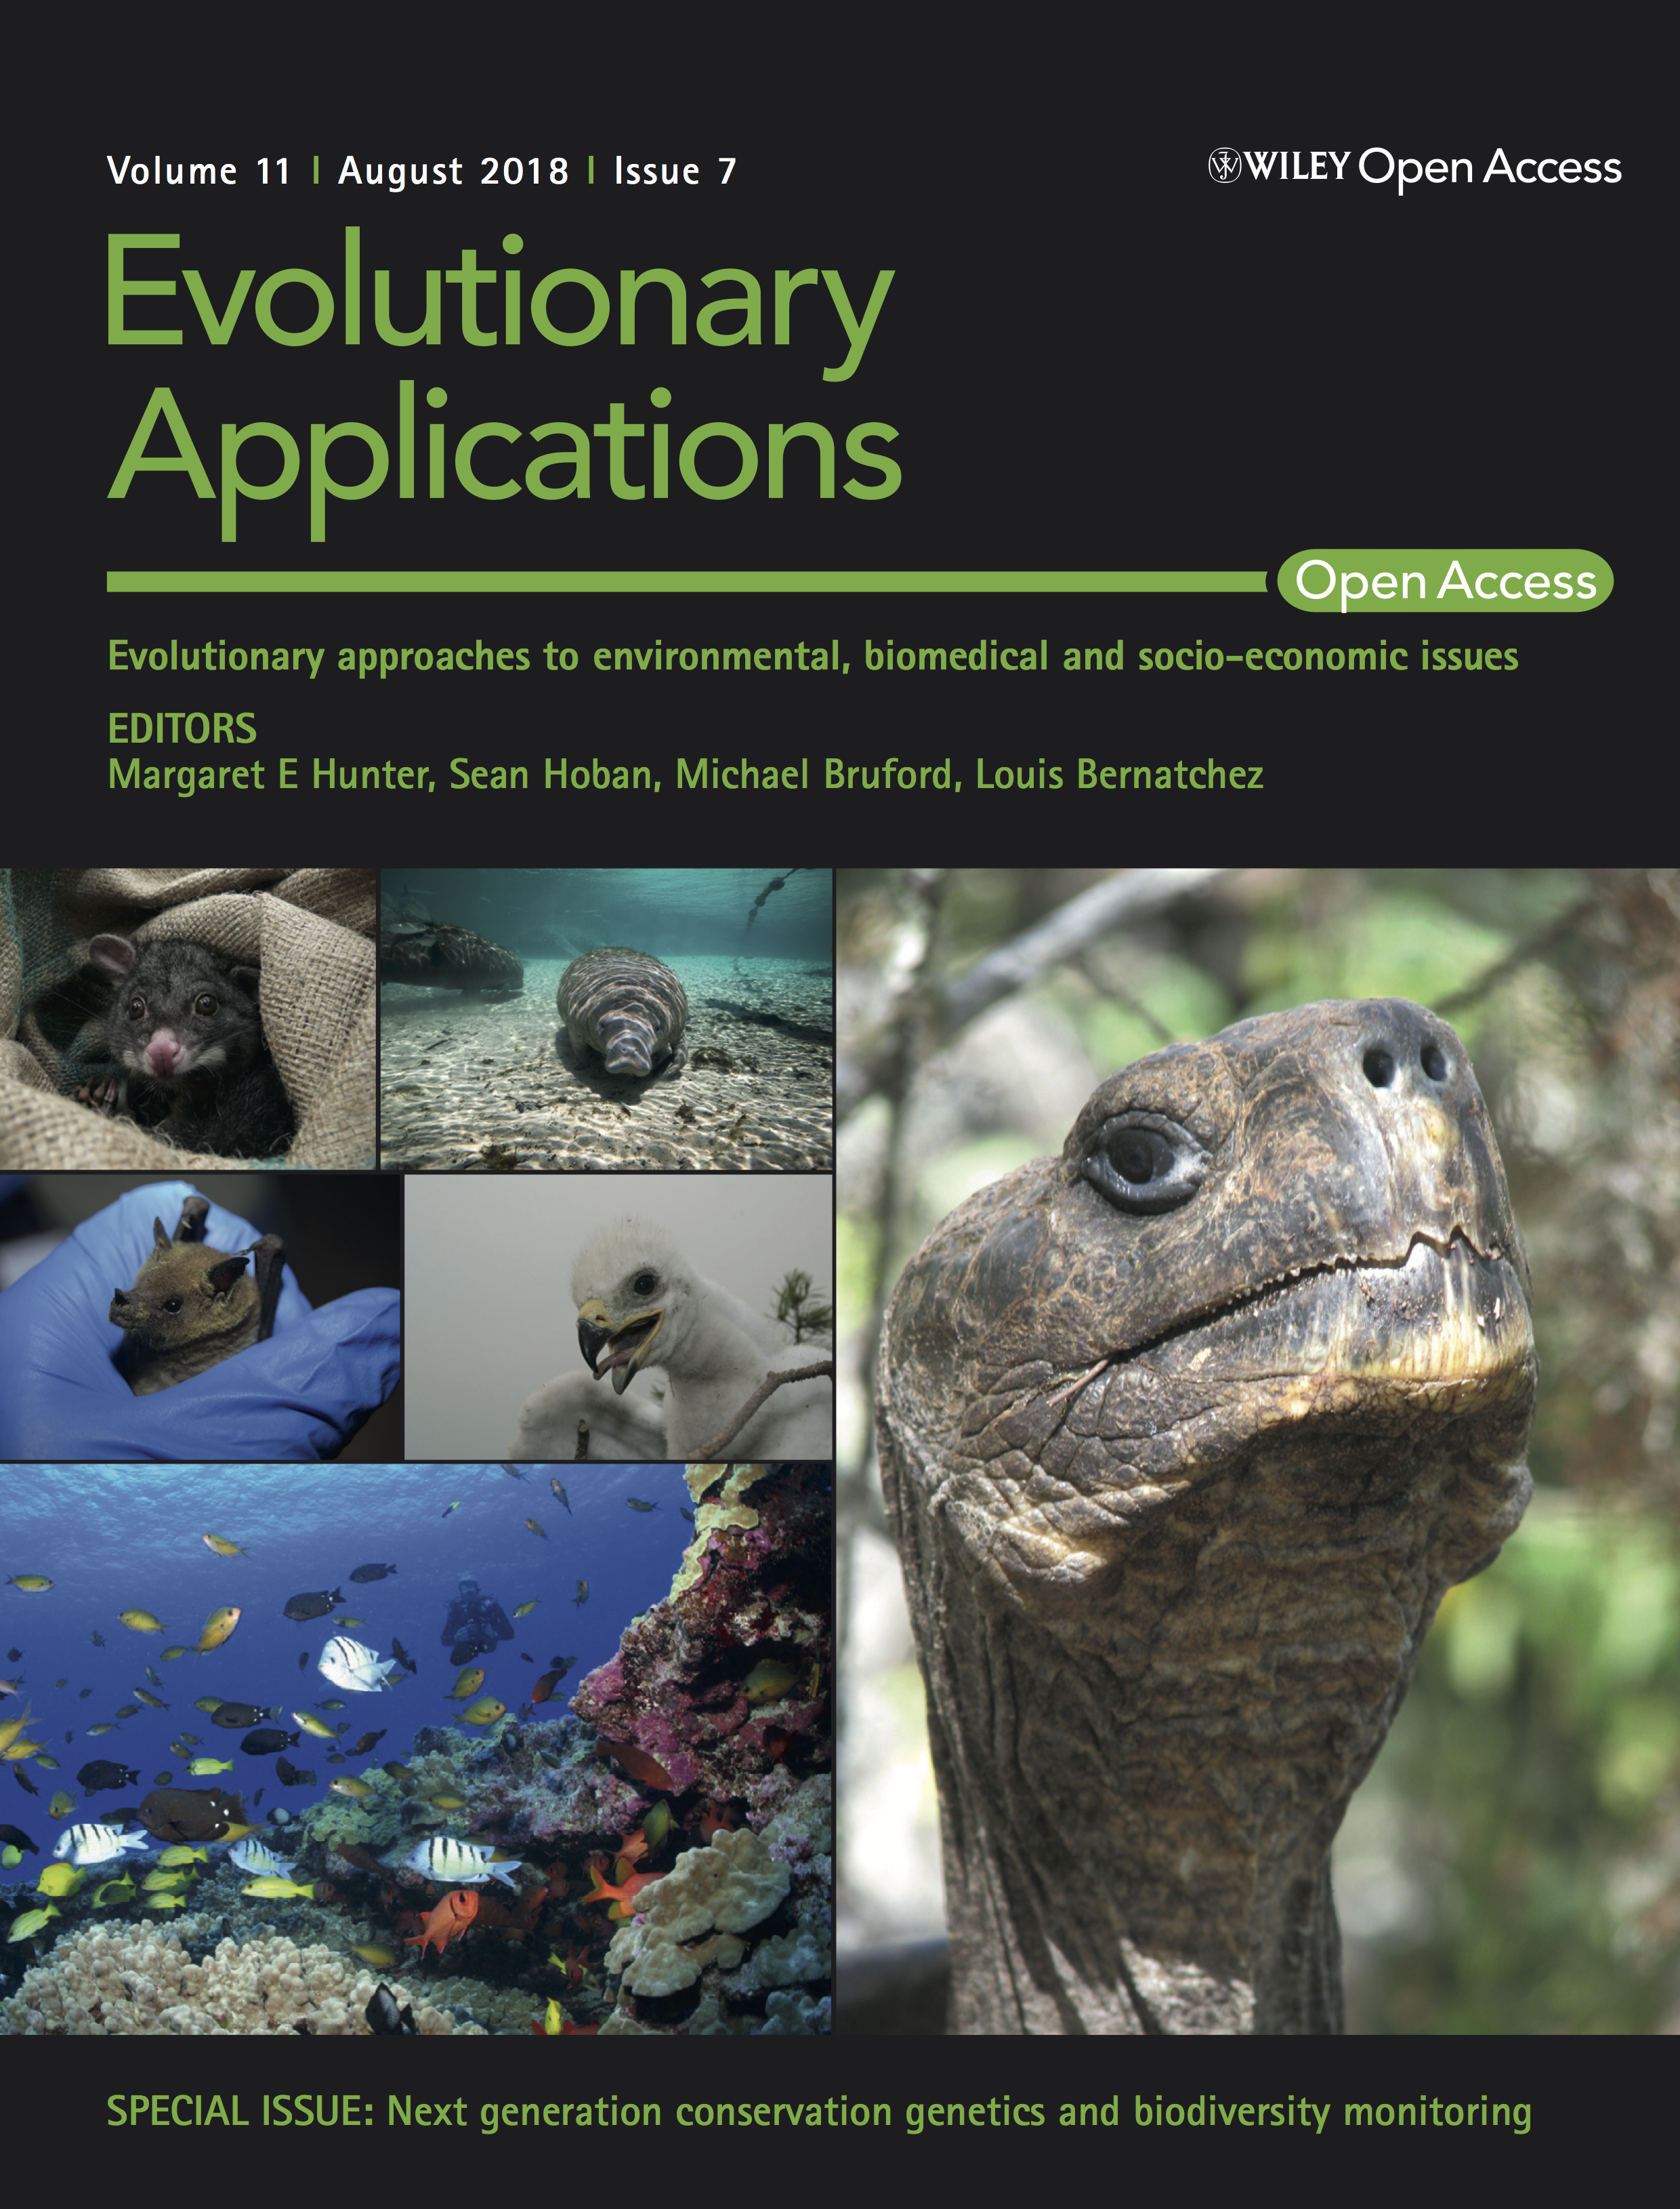 Evolutionary Applications cover featuring a collage of pictures including a Galapagos tortoise